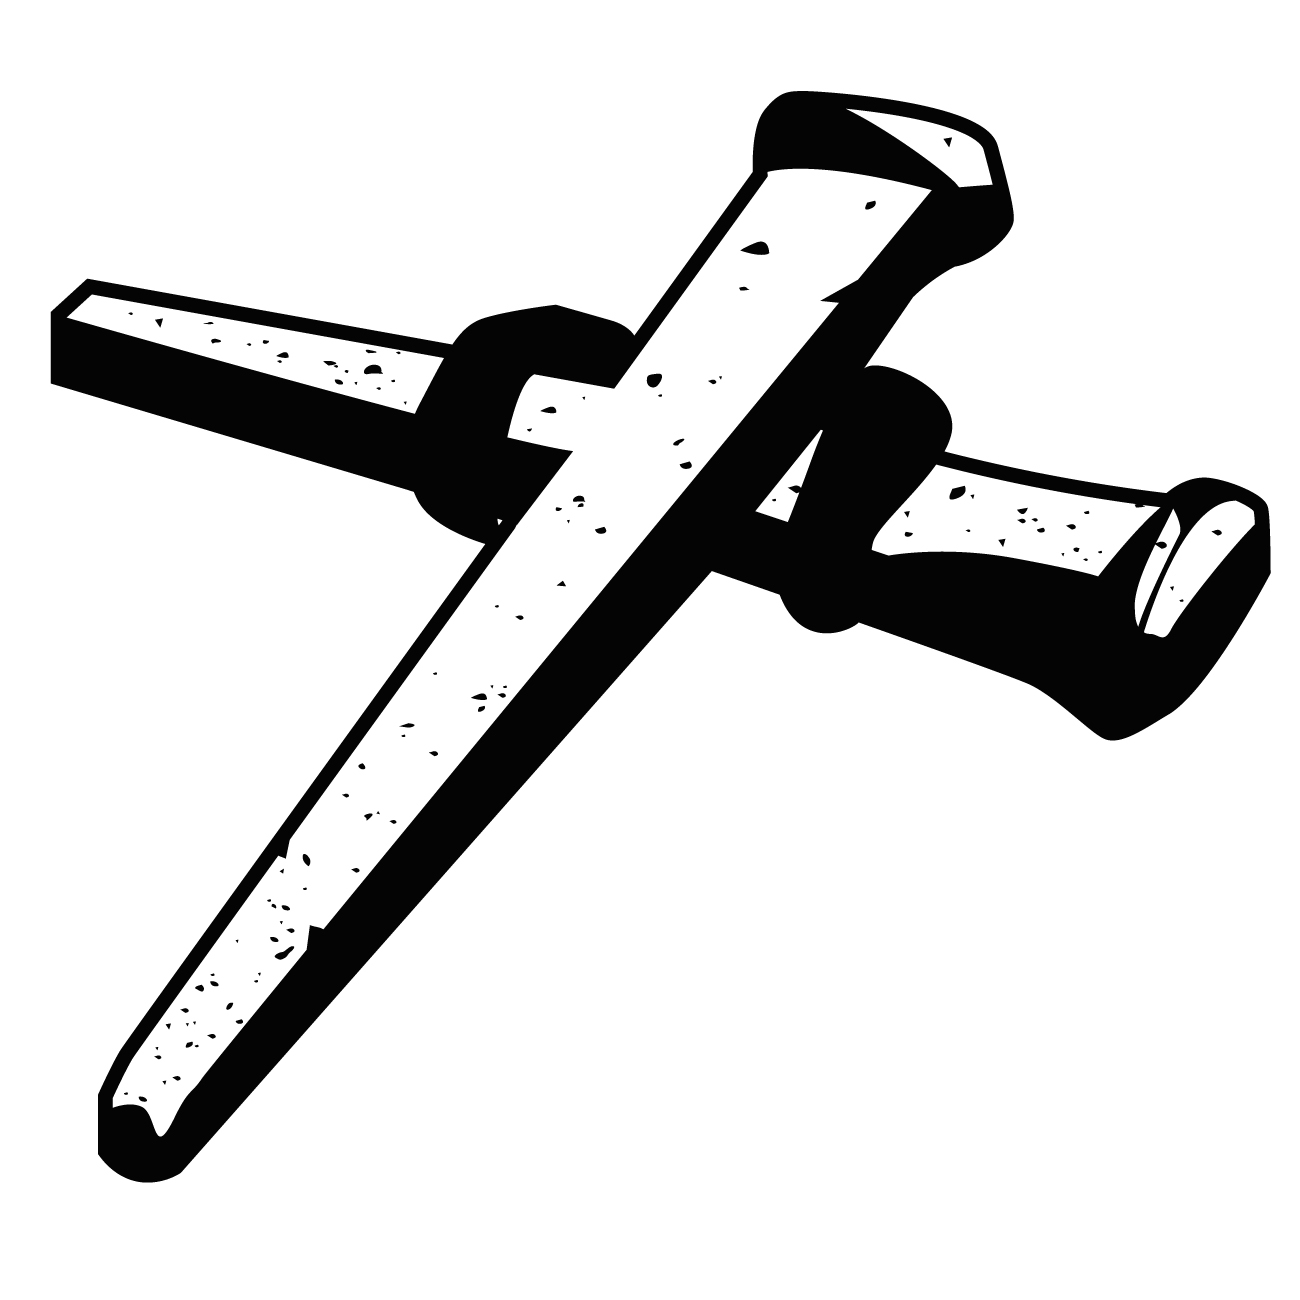 Three crucifixion nails clipart image royalty free download Free Empty Cross Cliparts, Download Free Clip Art, Free Clip ... image royalty free download